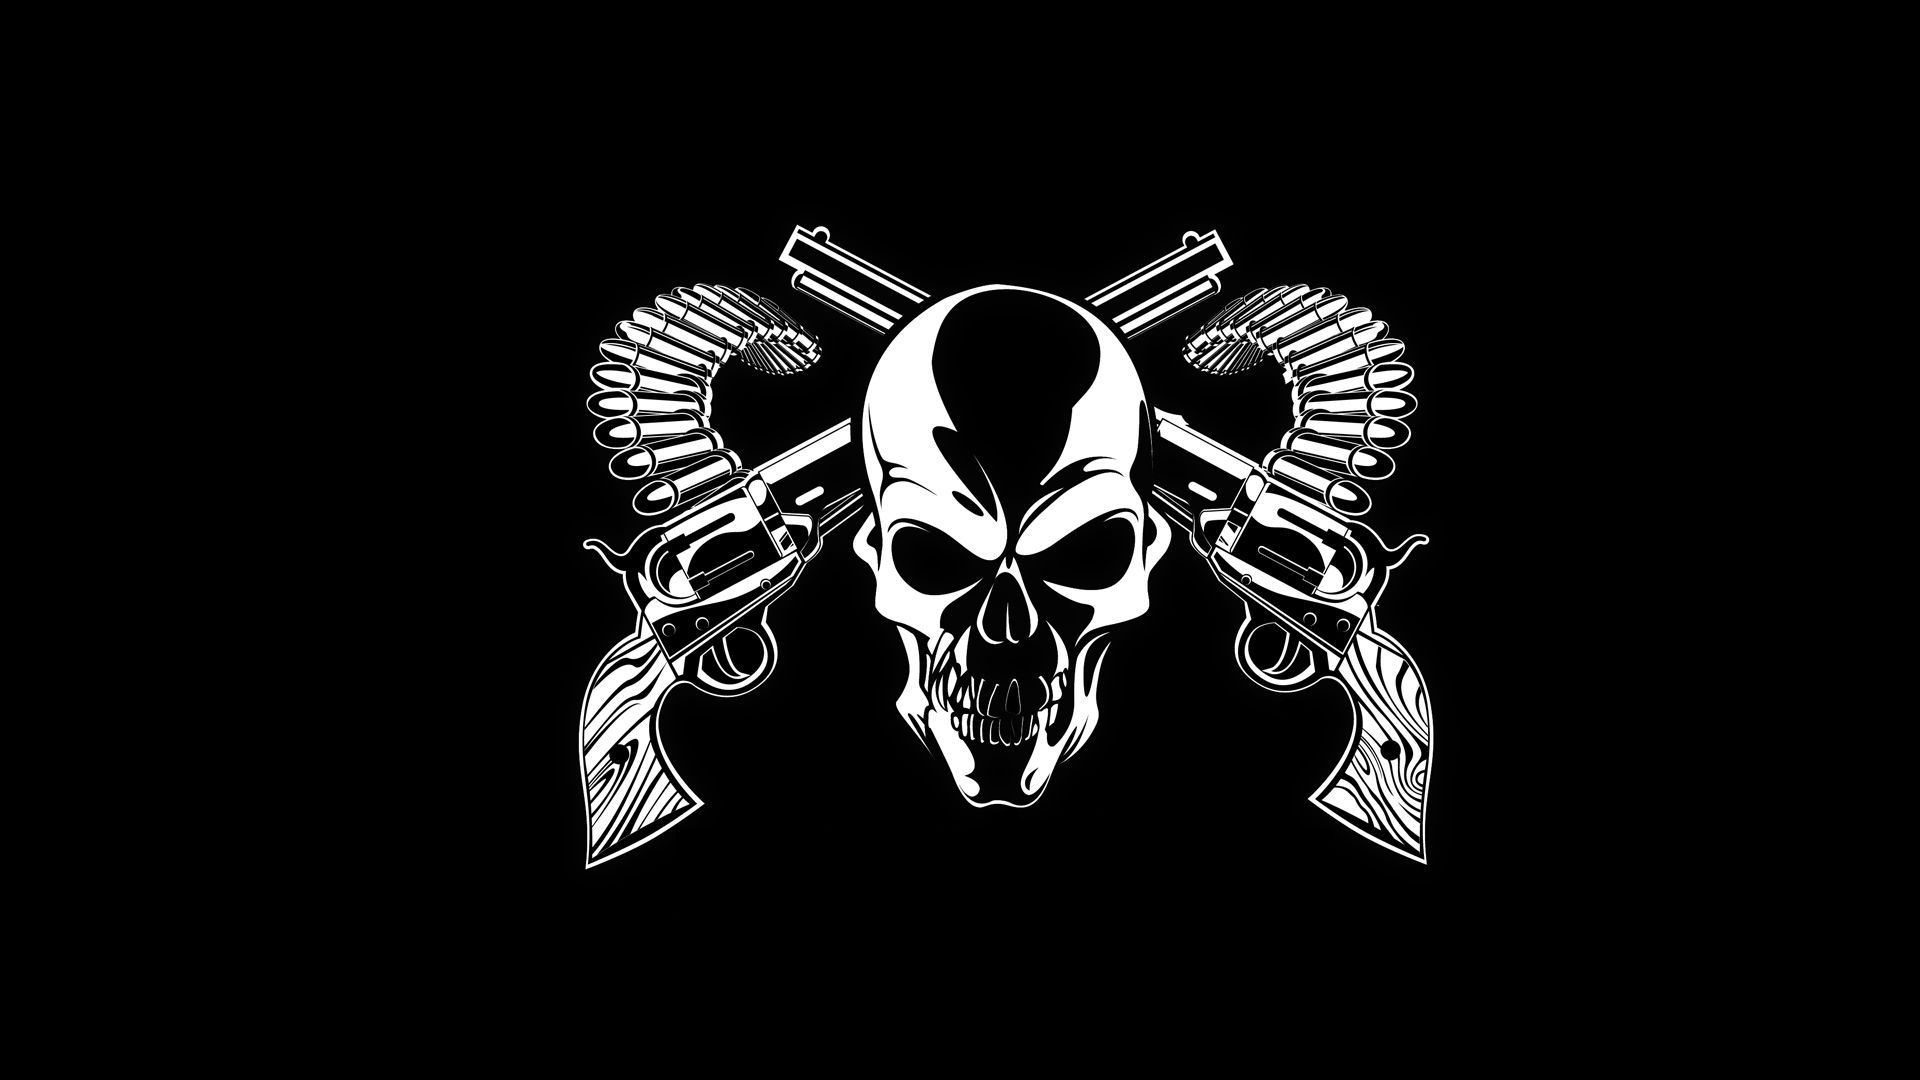 Skull Wallpapers Free Download – HD Wallpapers , Picture ,Background  ,Photos ,Image – Free HQ Wallpaper – HD Wallpaper PC | Pinterest | Skull  wallpaper, …